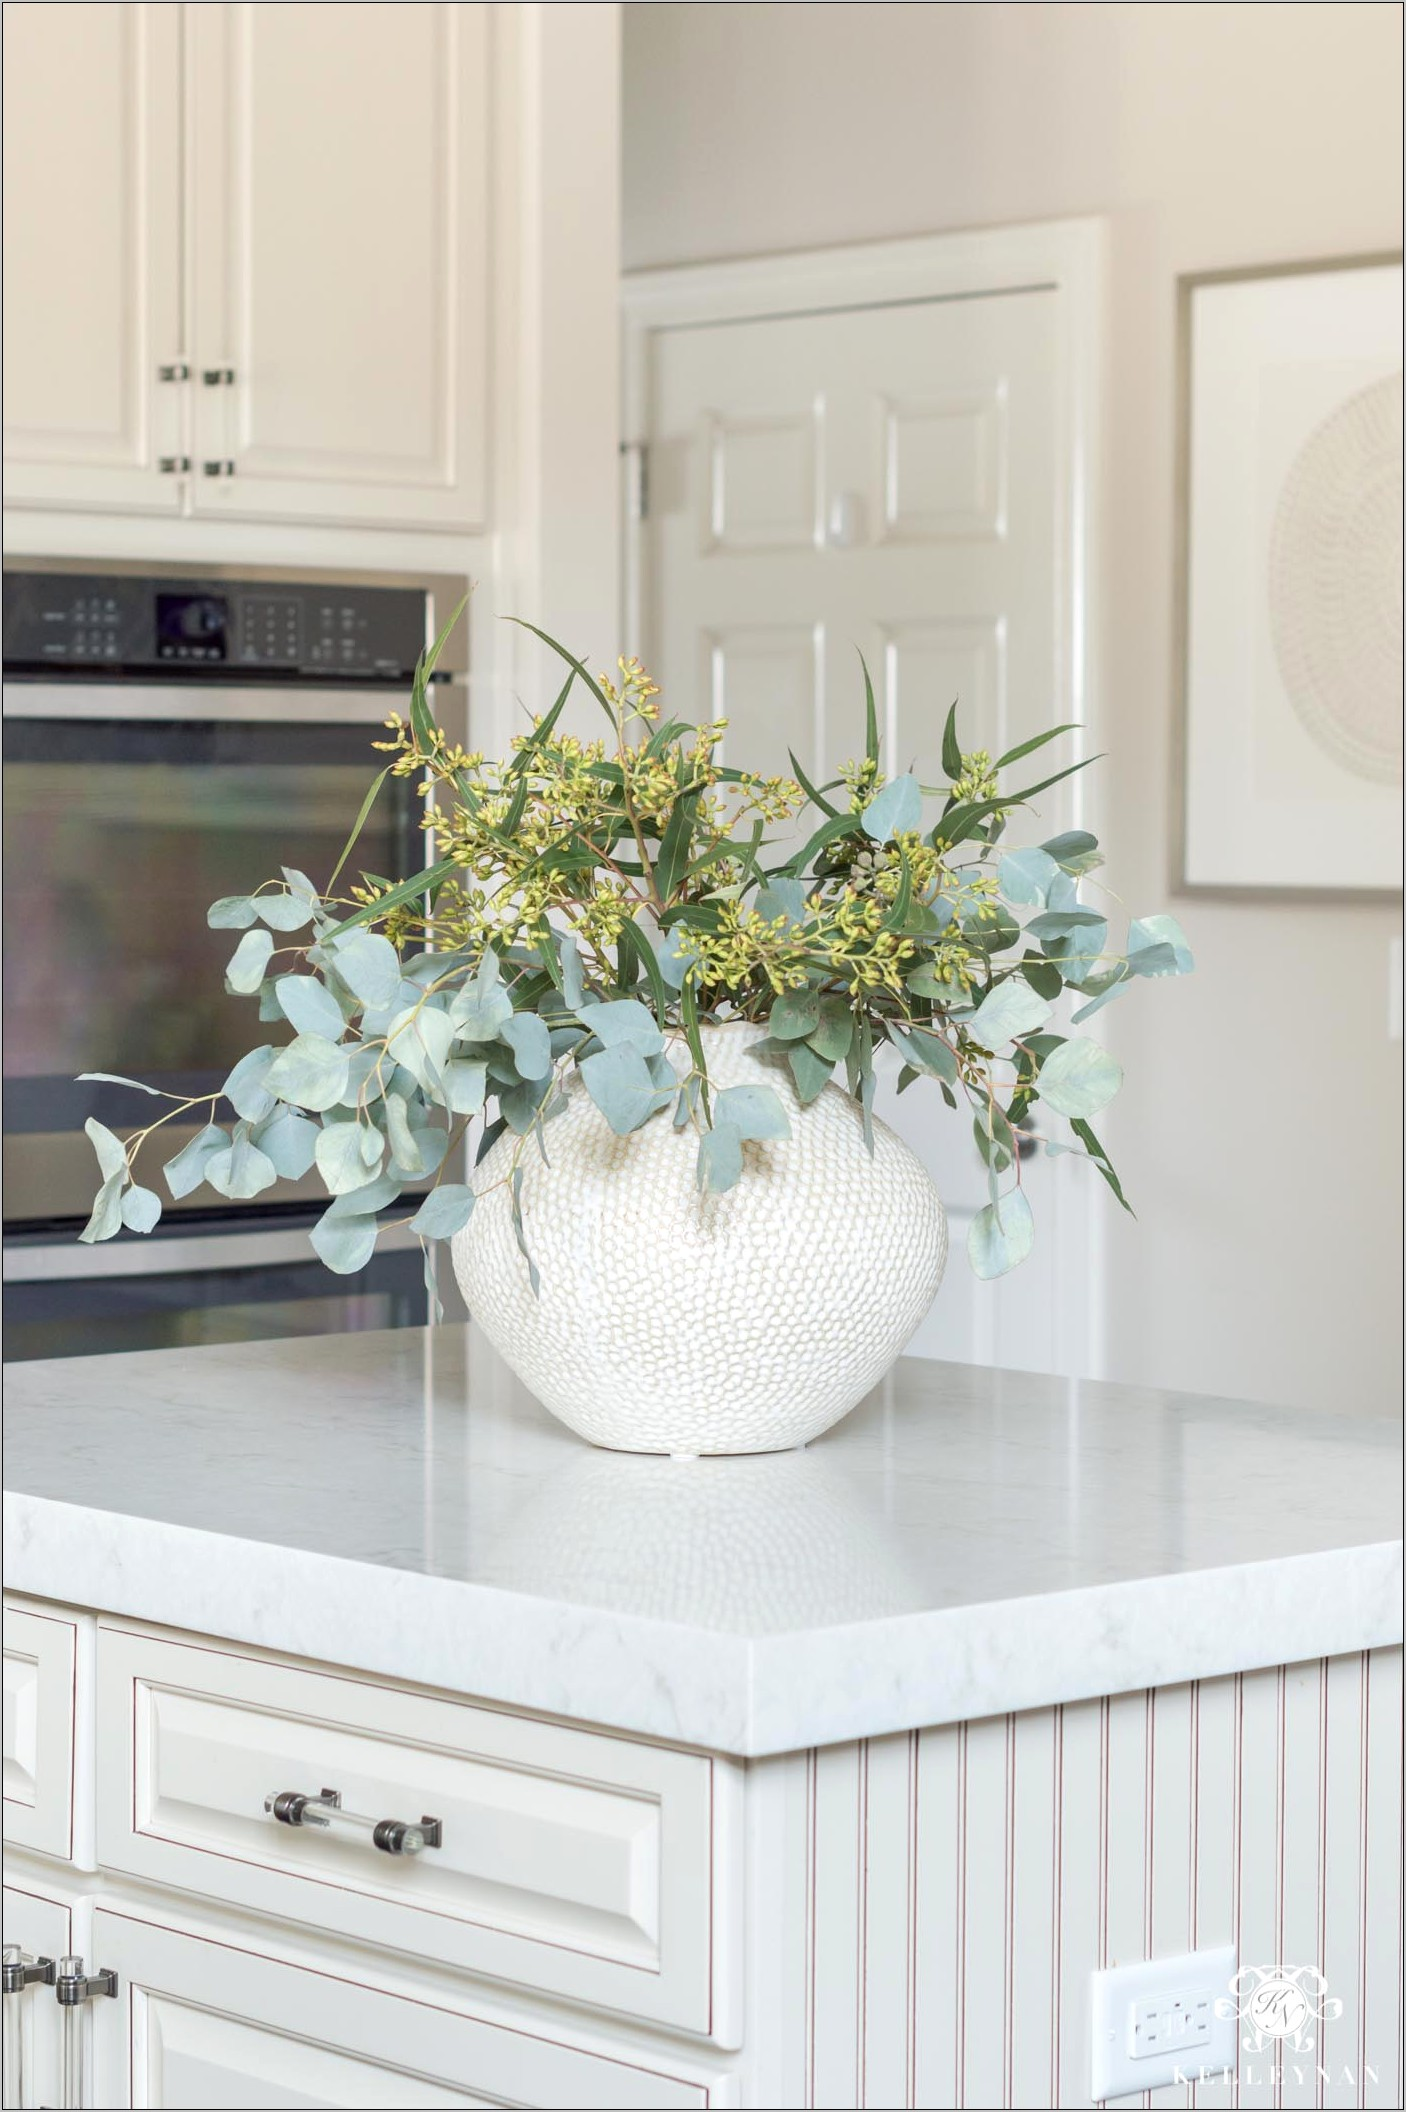 Decorative Glass Bowl On Kitchen Counter